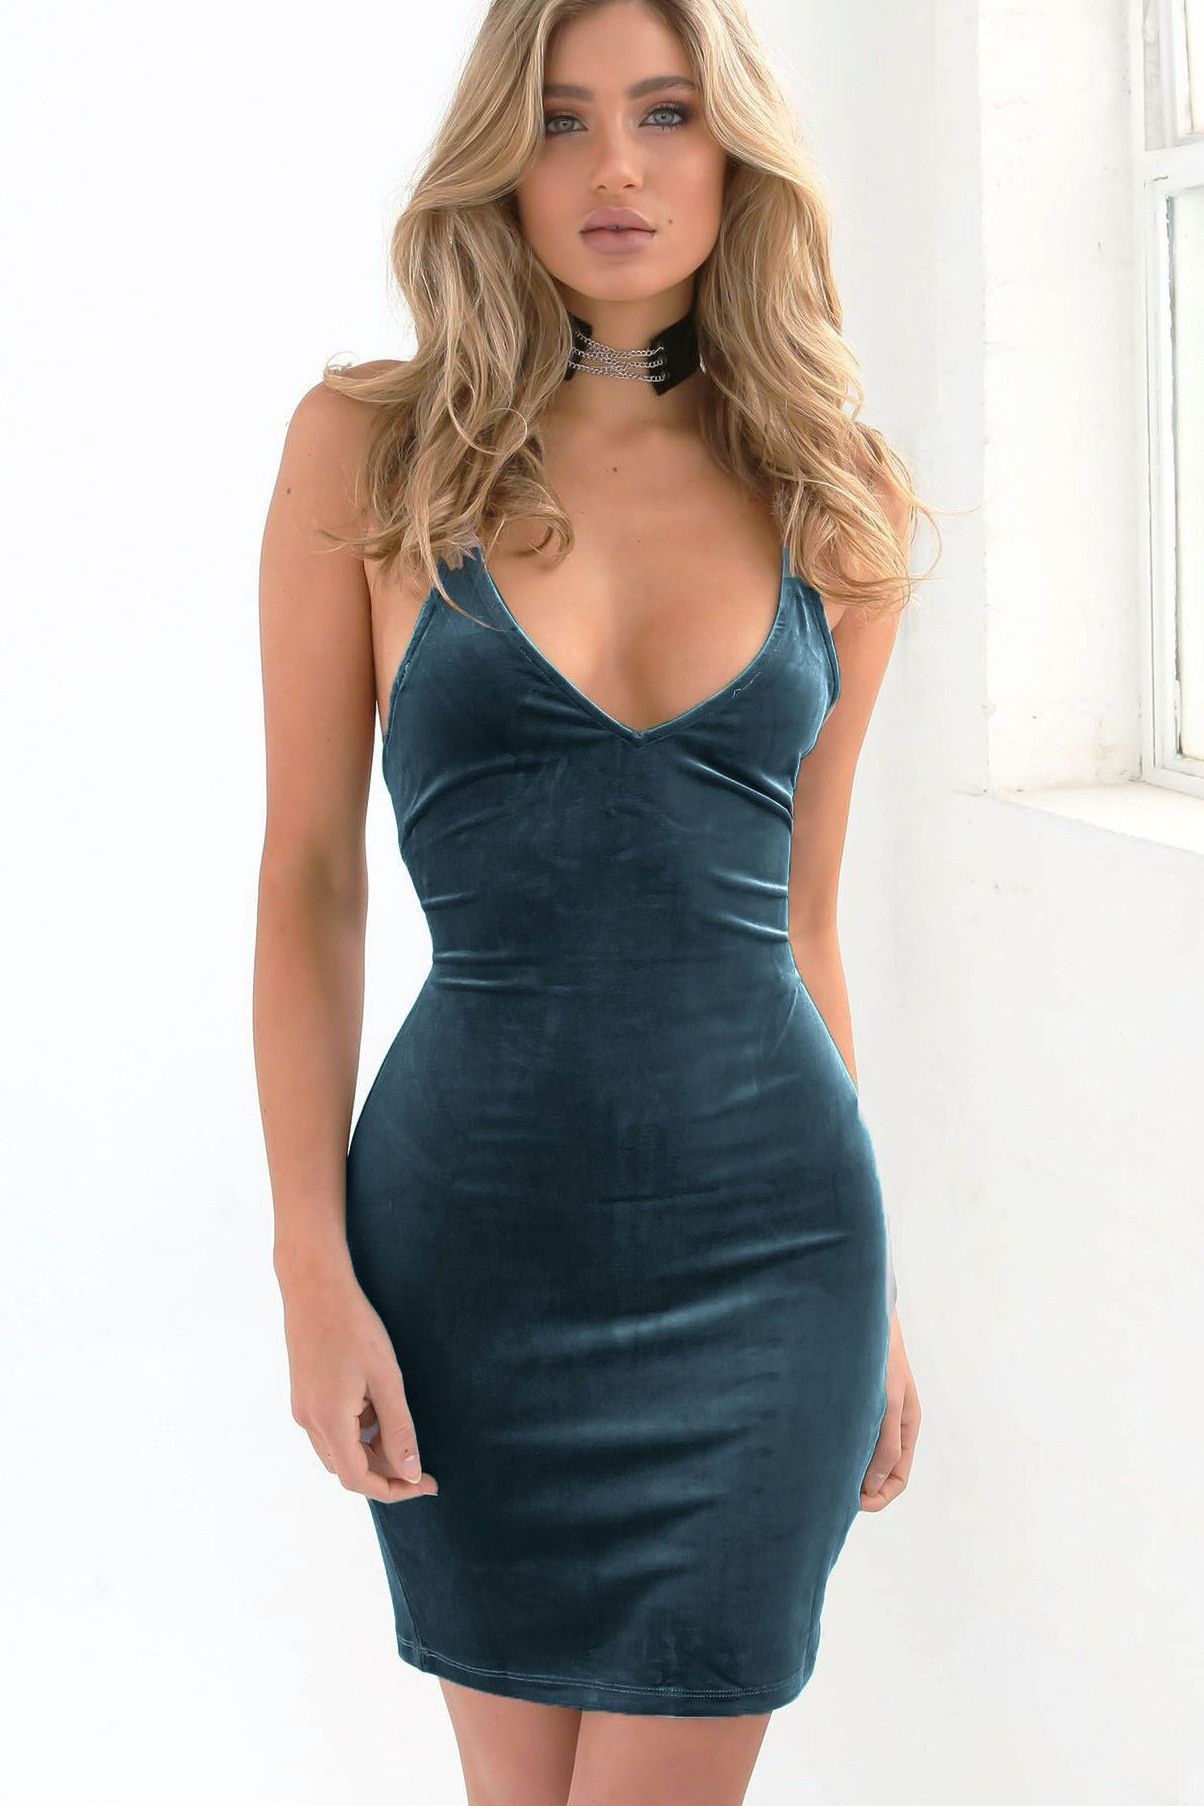 Strap V-neck Sleeveless Solid Sheath Short Dress